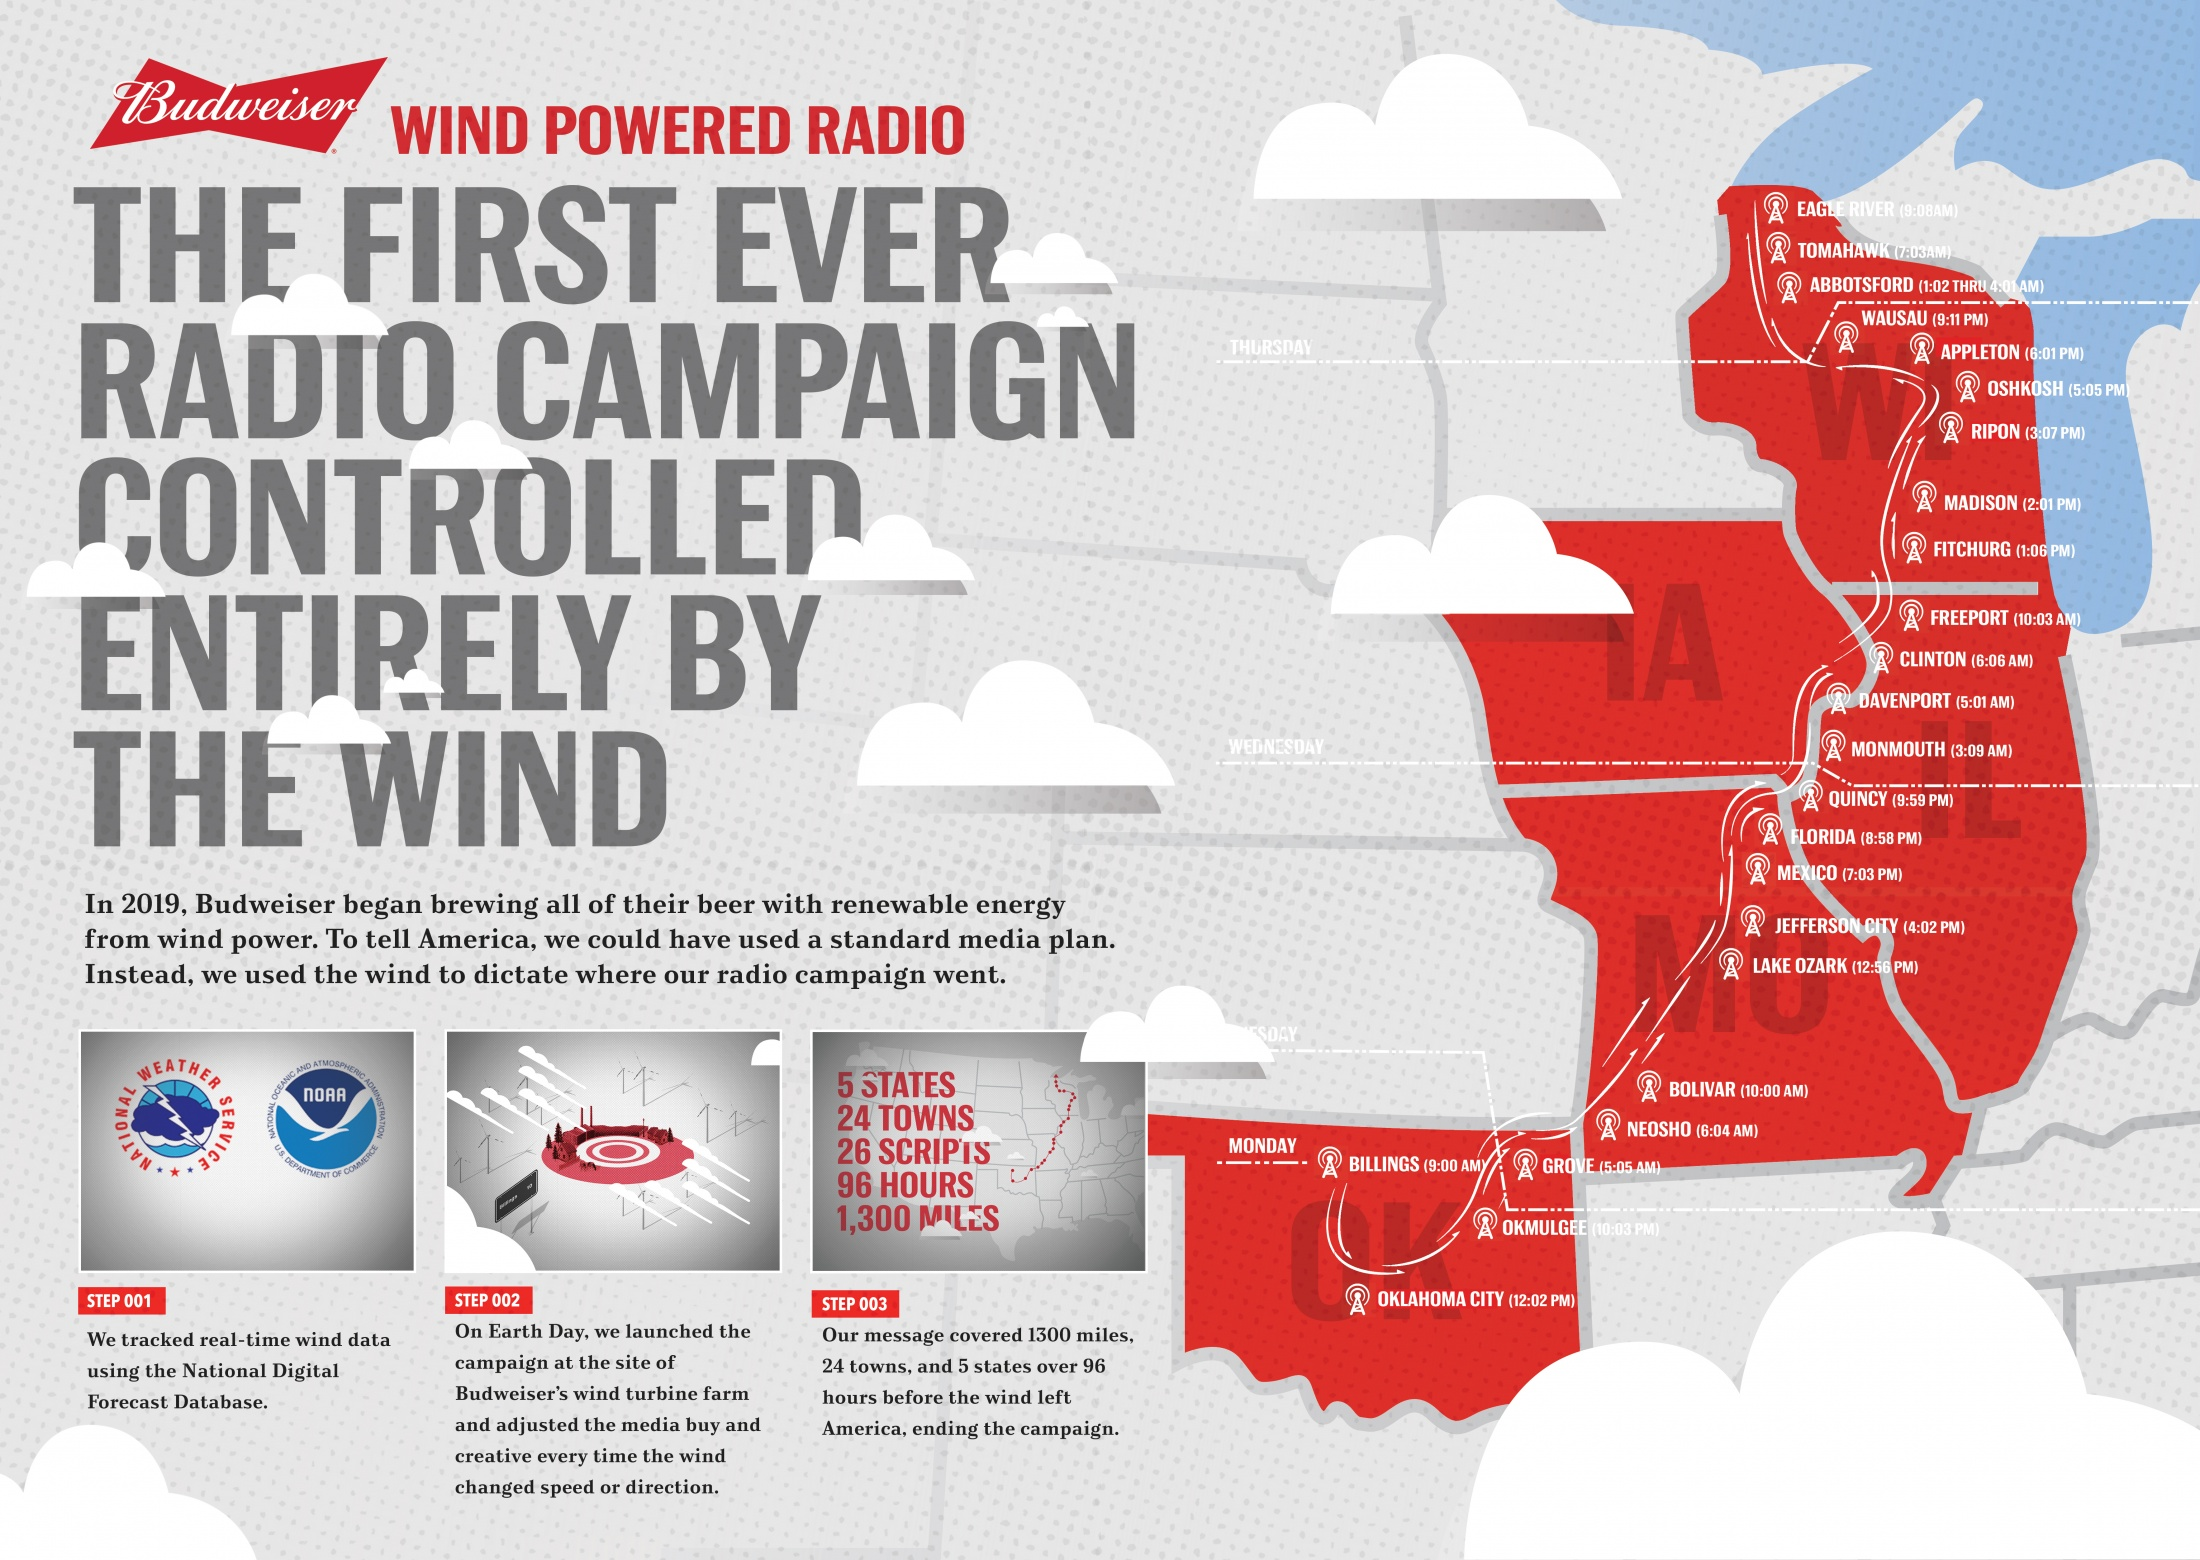 Image Media for Wind Powered Radio